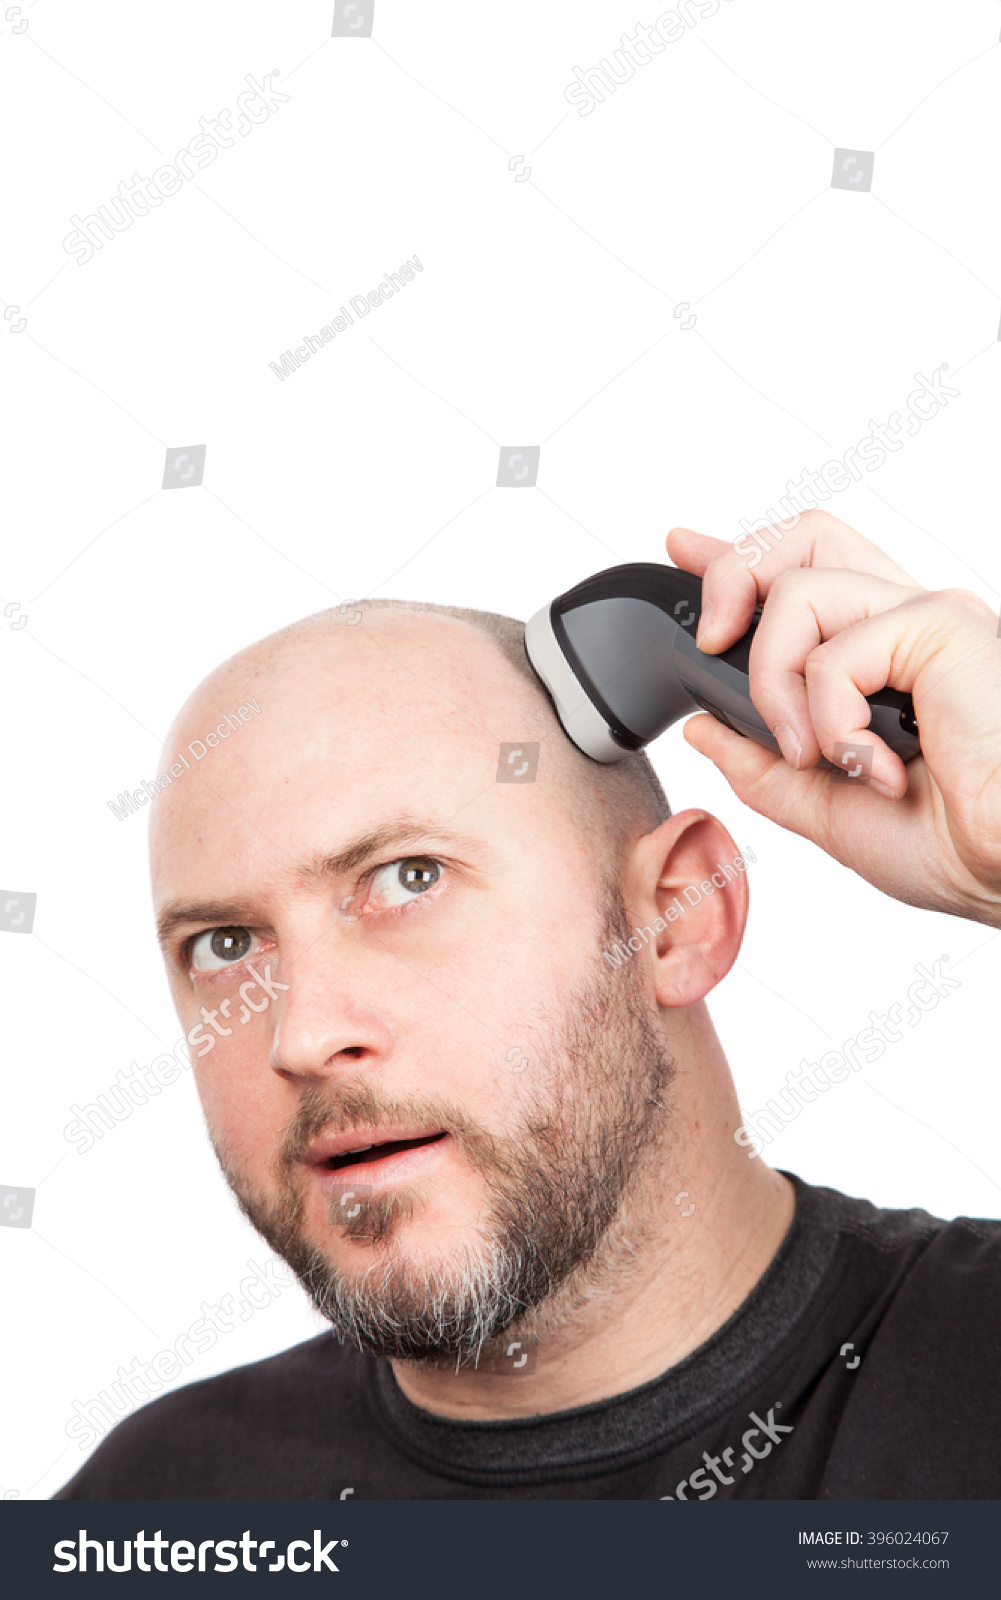 bald man with beard shaving his head with an electric shaver stock photo 3960. Black Bedroom Furniture Sets. Home Design Ideas